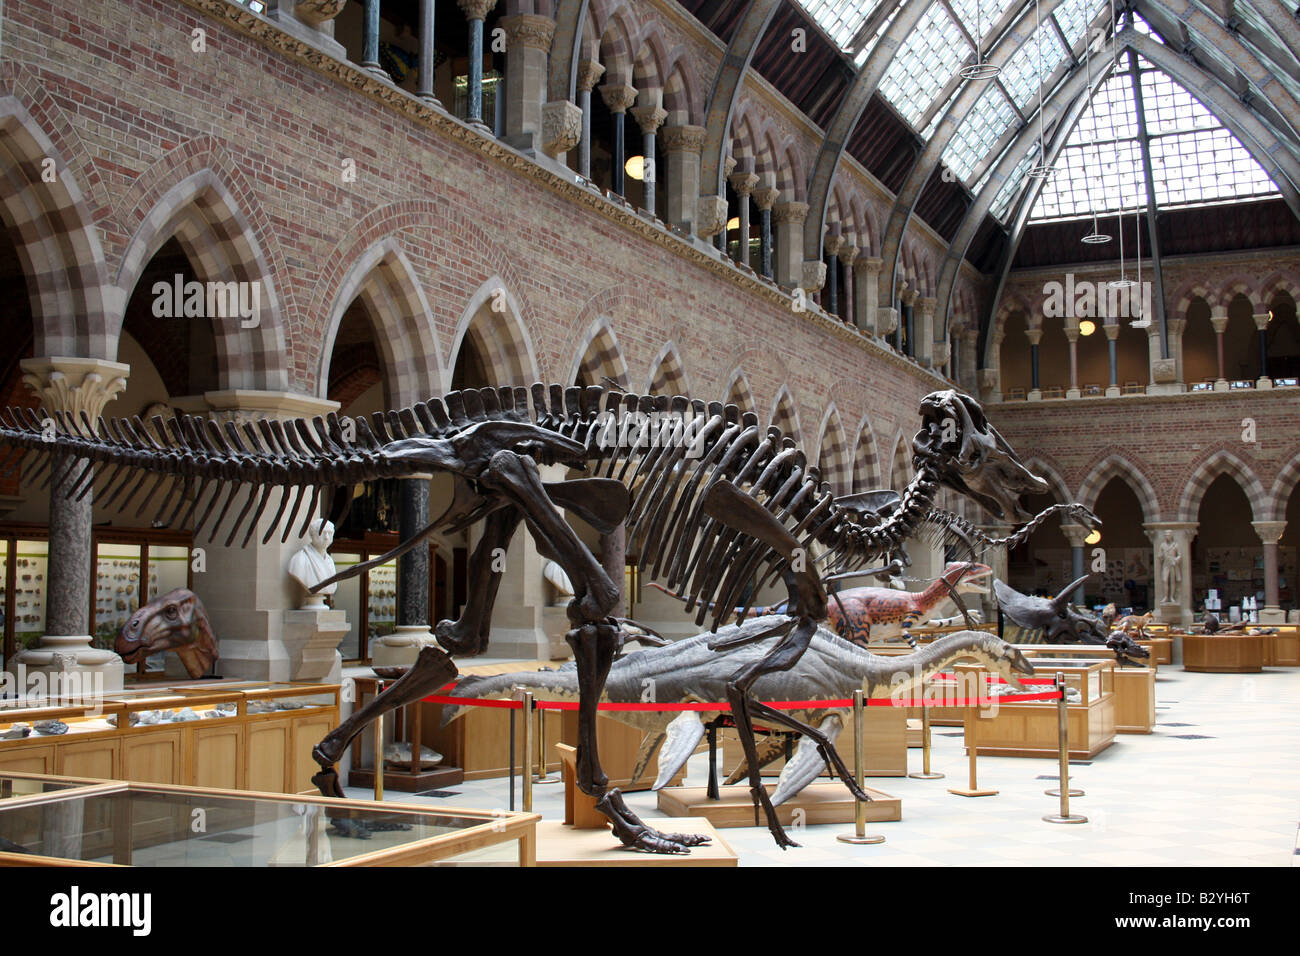 Dinosaur skeletons in Oxford's Natural history museum. - Stock Image